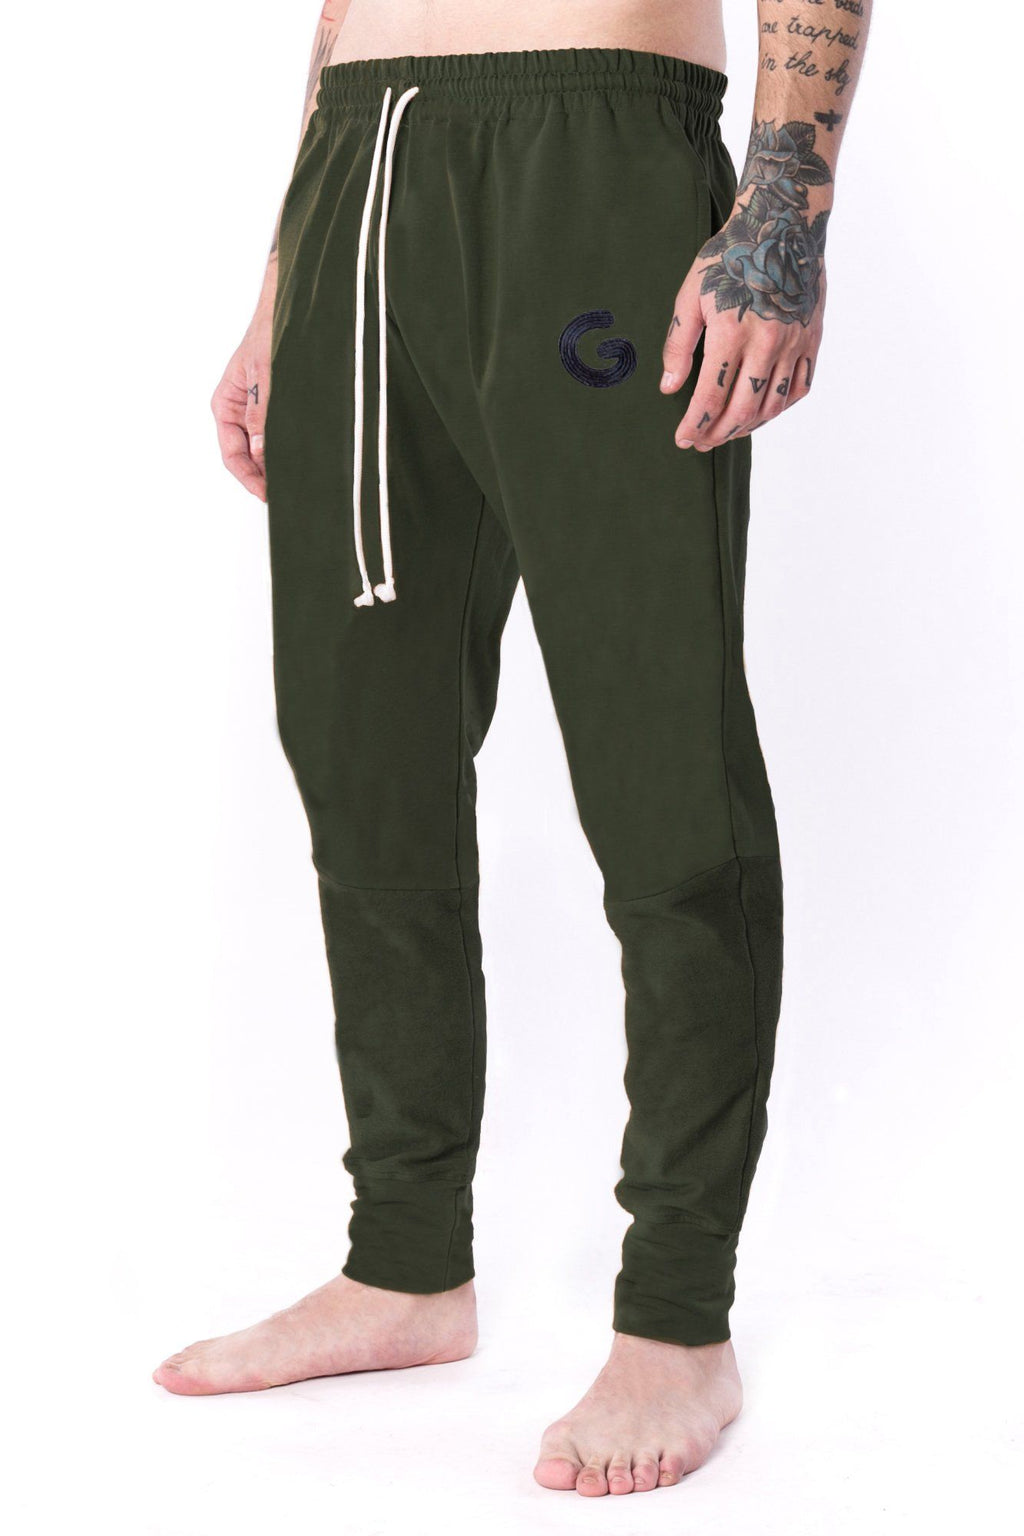 The Man Panelled Jogger 17 // khaki